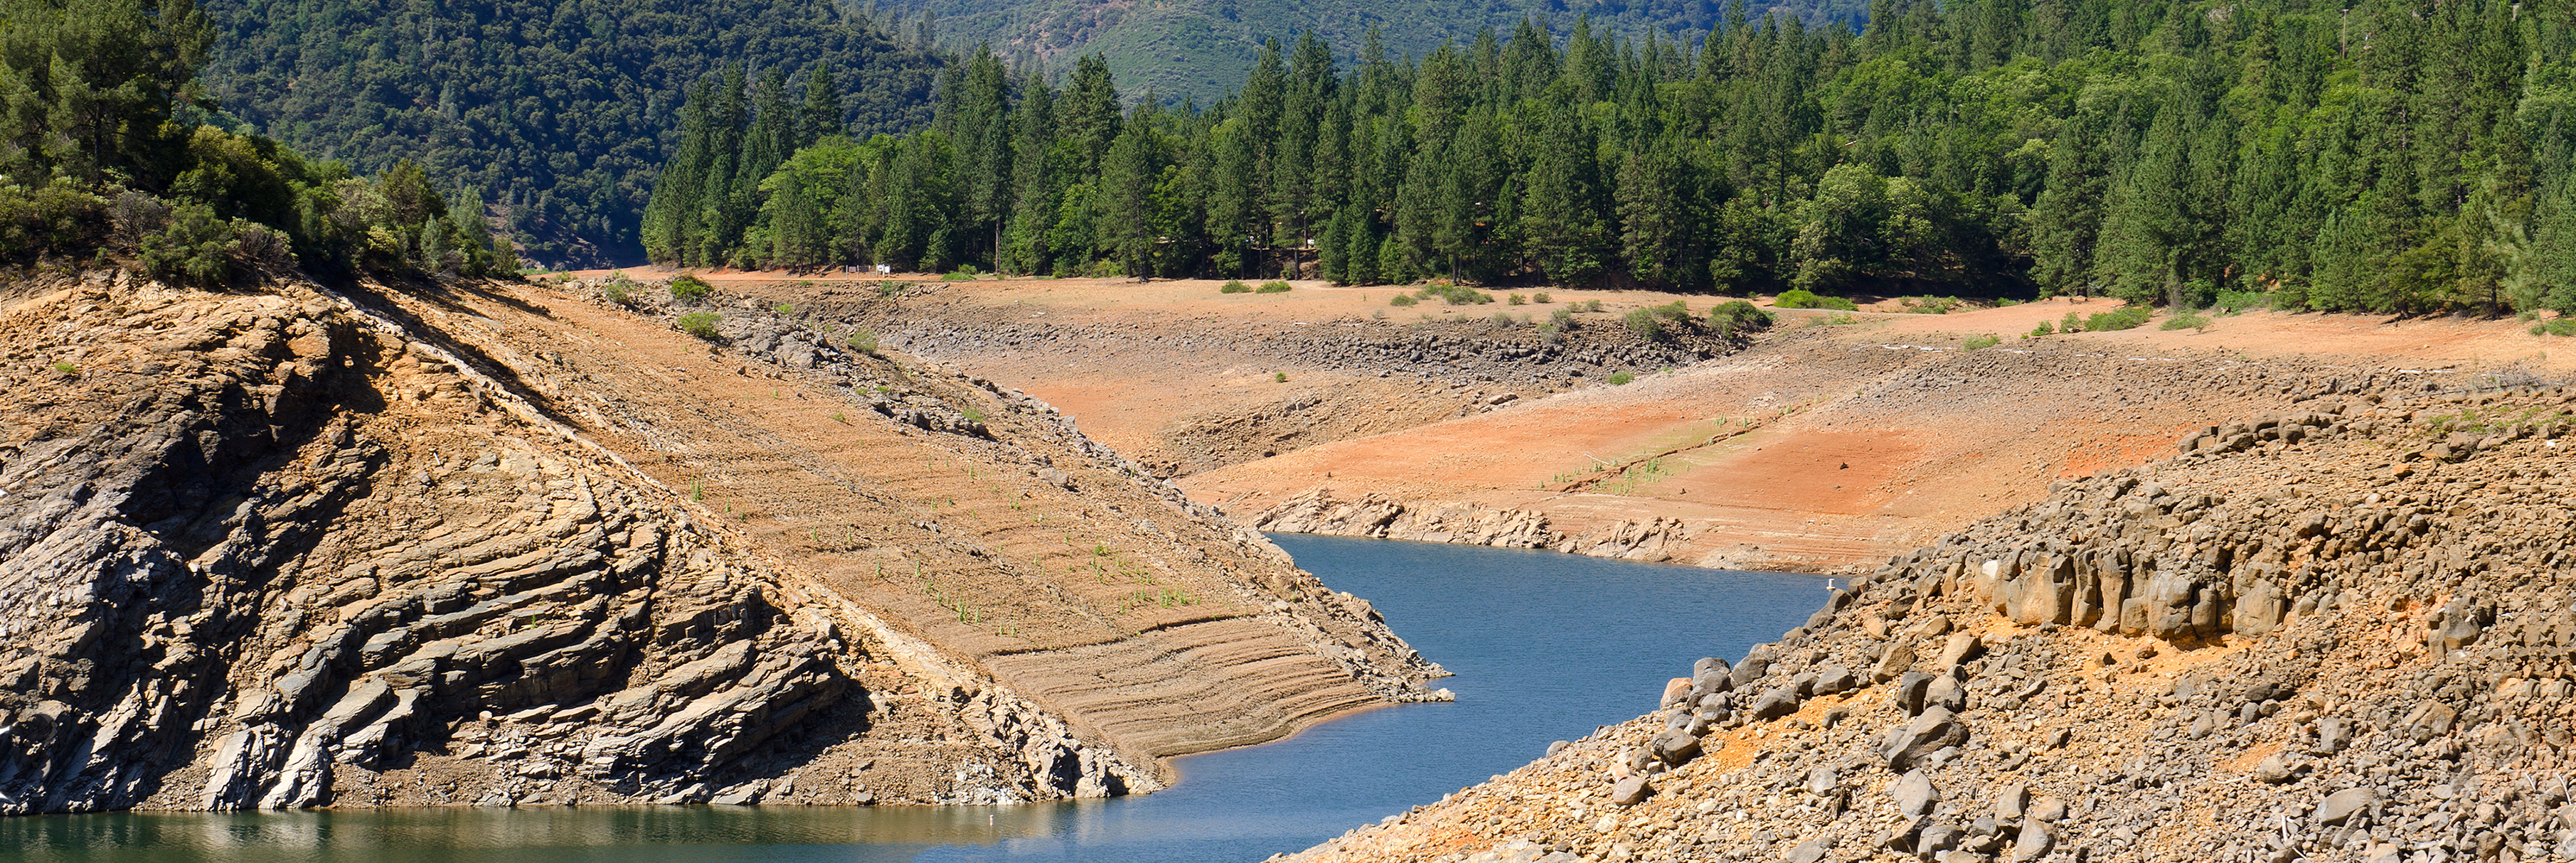 Drought-update-slider-californiadrought.org_-1